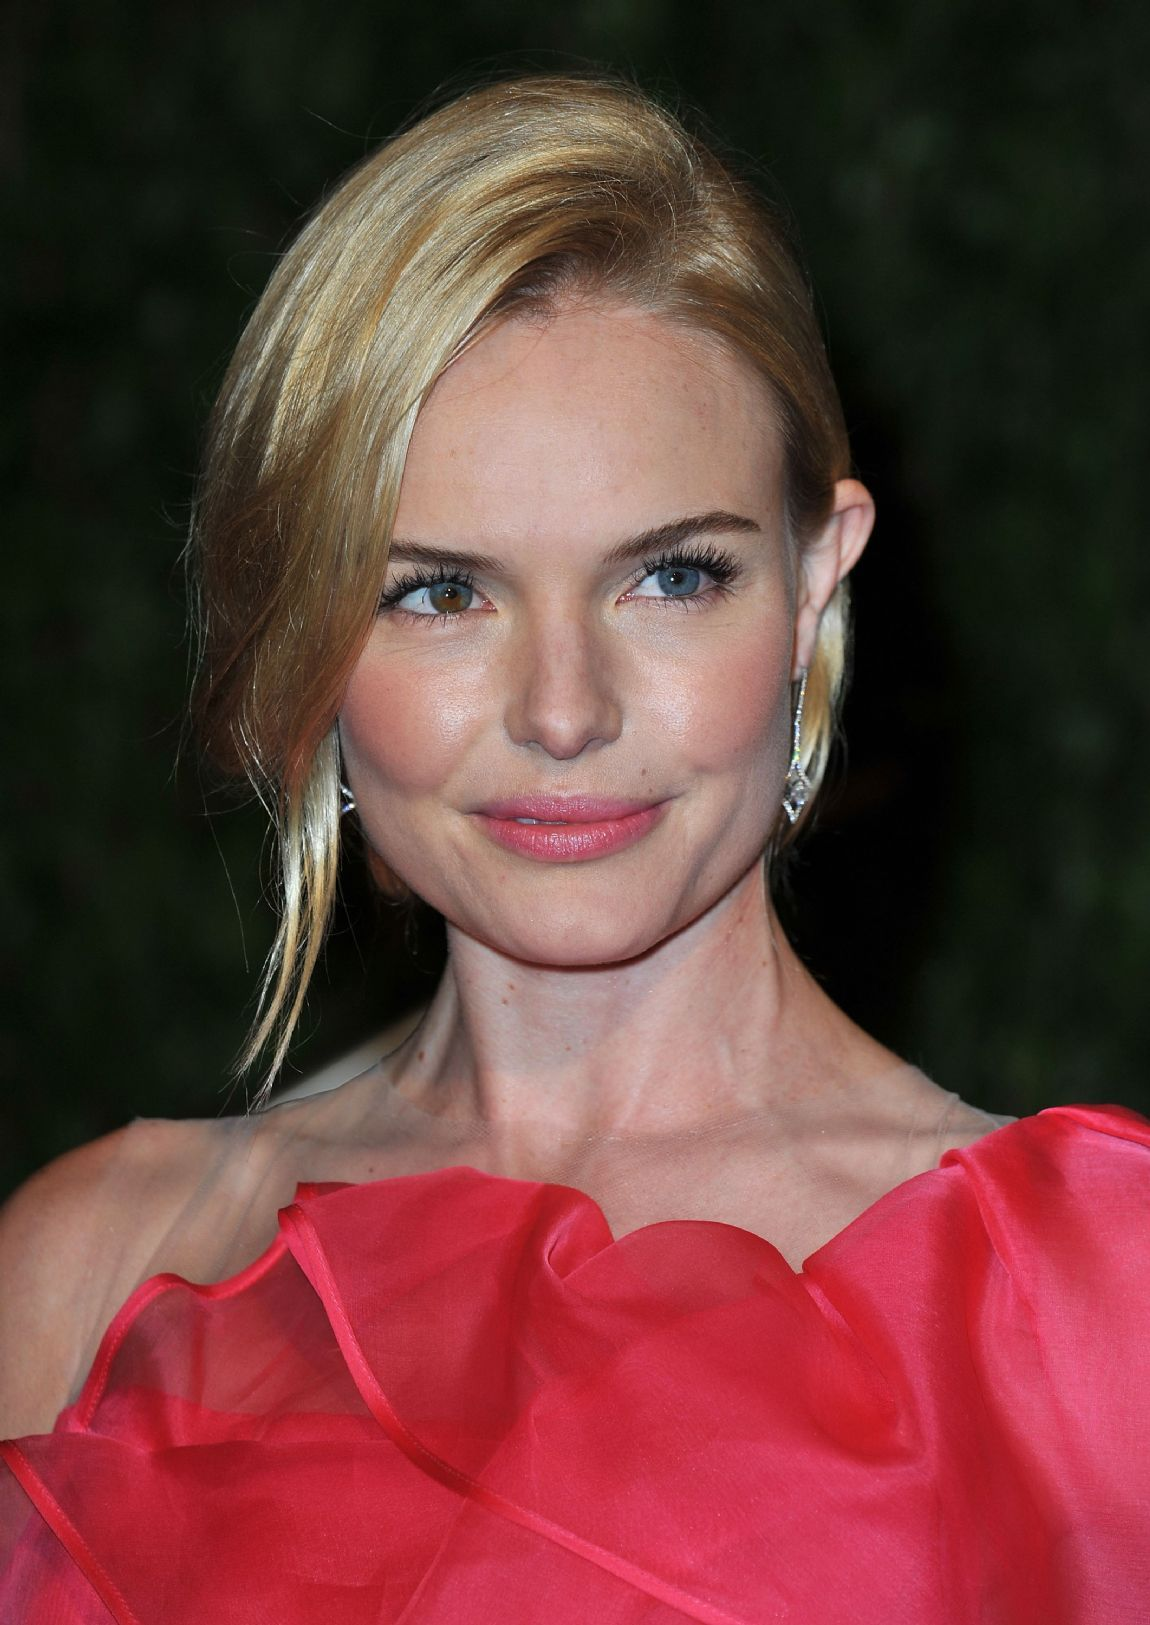 Kate bosworth beauty pinterest kate bosworth lips and makeup